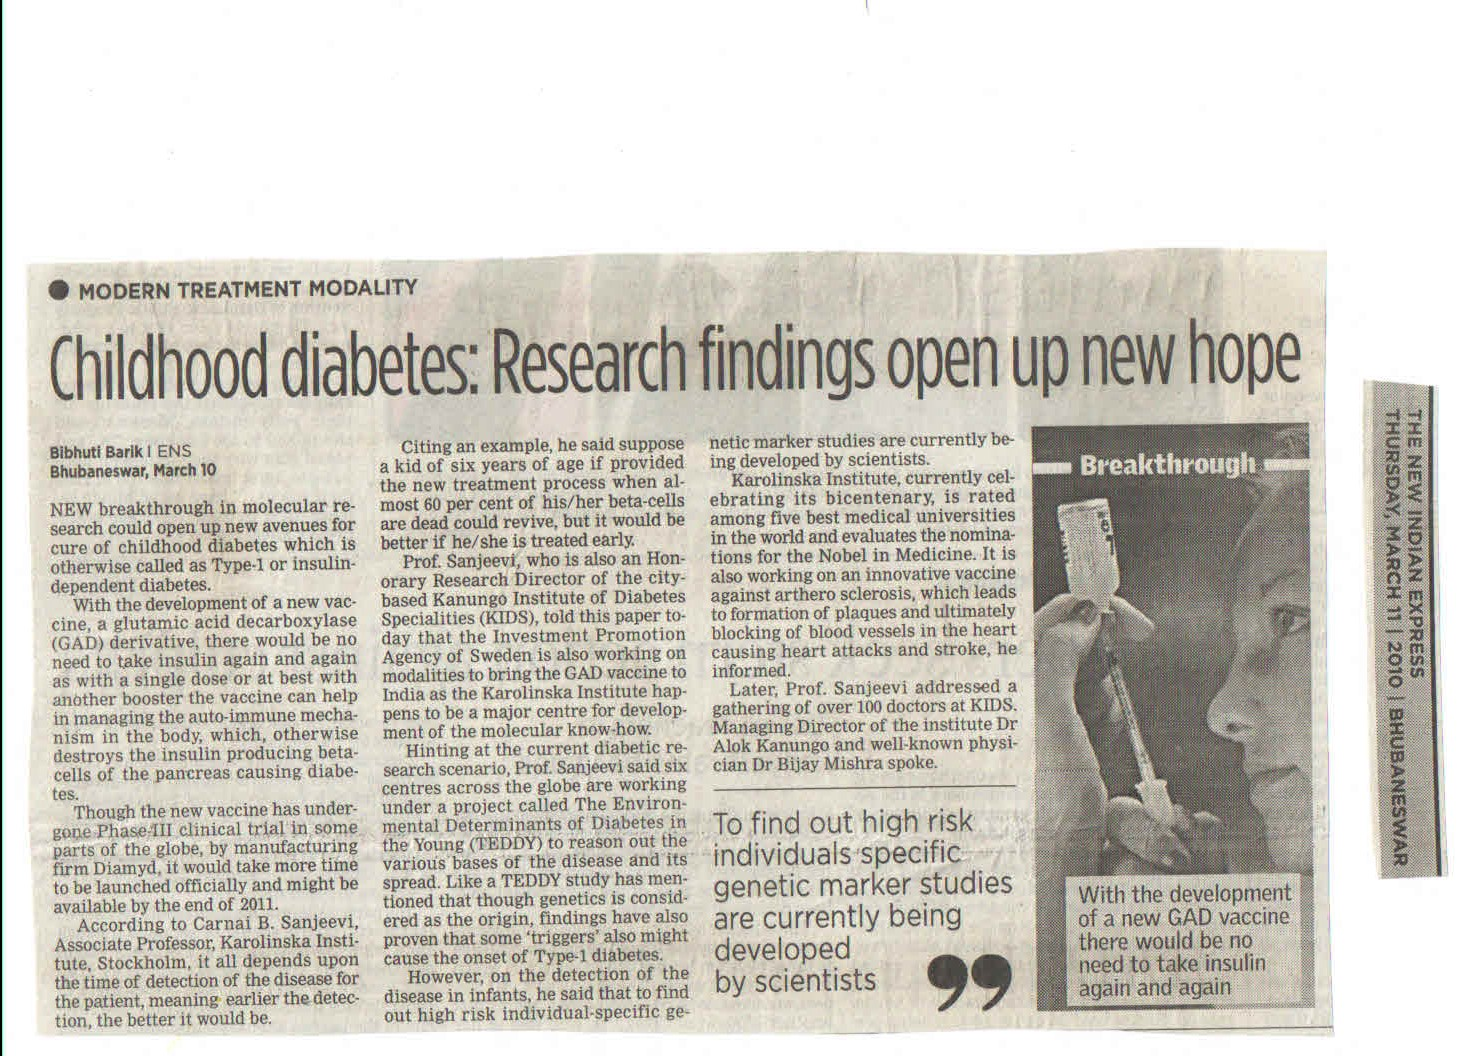 press release kanungo institute of diabetes and multispeciality   11 03 2010 childhood diabetes research fining open up new hope the new n express